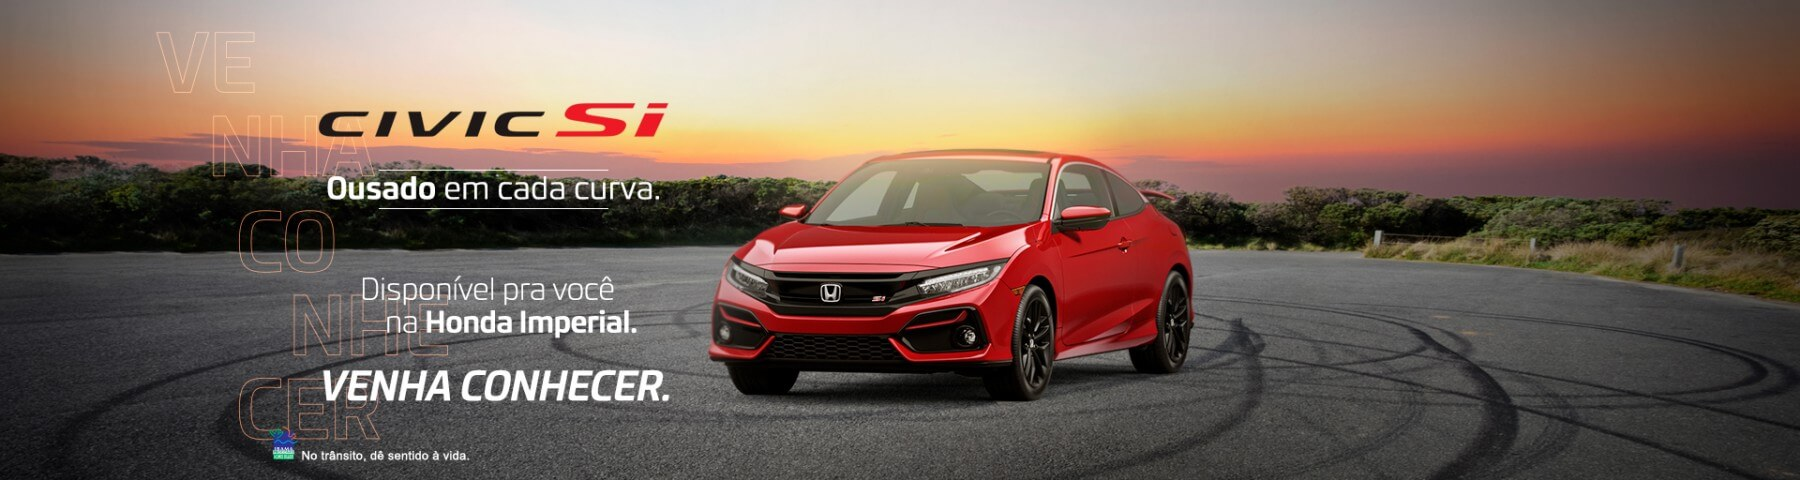 Imperial-Honda-Civic-Si